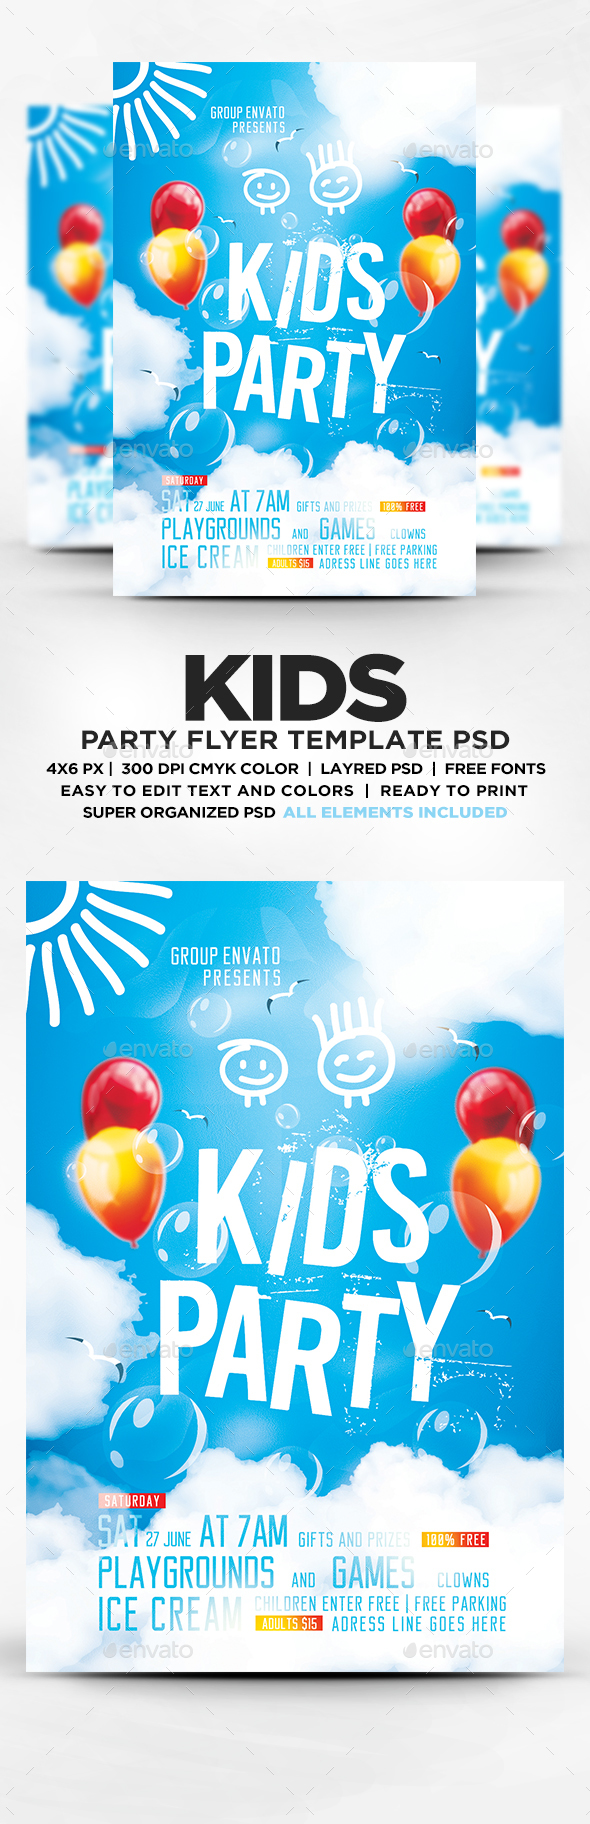 Kids party flyer template psd download here httpgraphicriver kids party flyer template psd download here httpgraphicriveritem kids party flyer template psd16766534refksioks maxwellsz